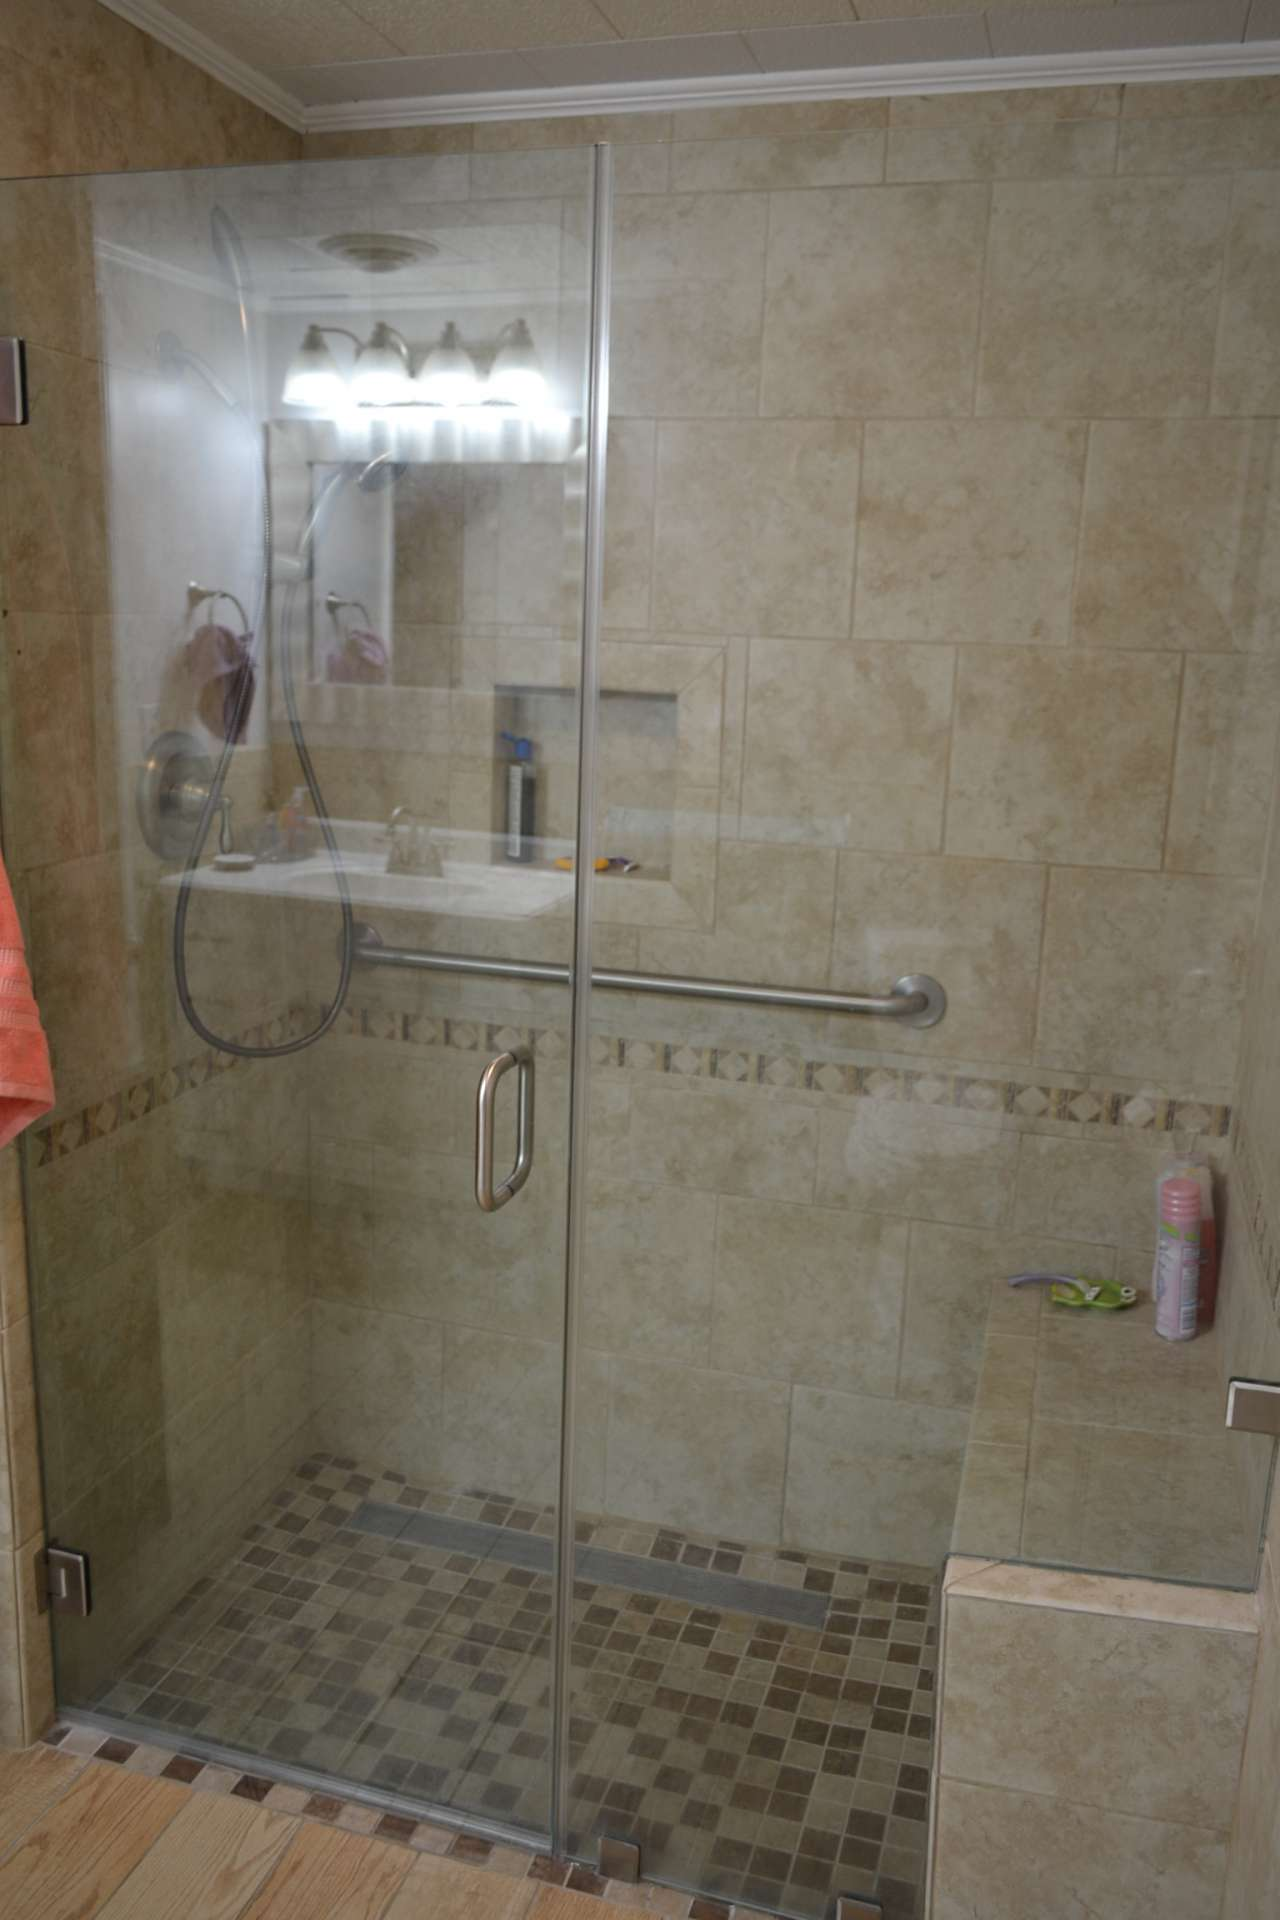 Newly upgraded tiled walk-in shower.